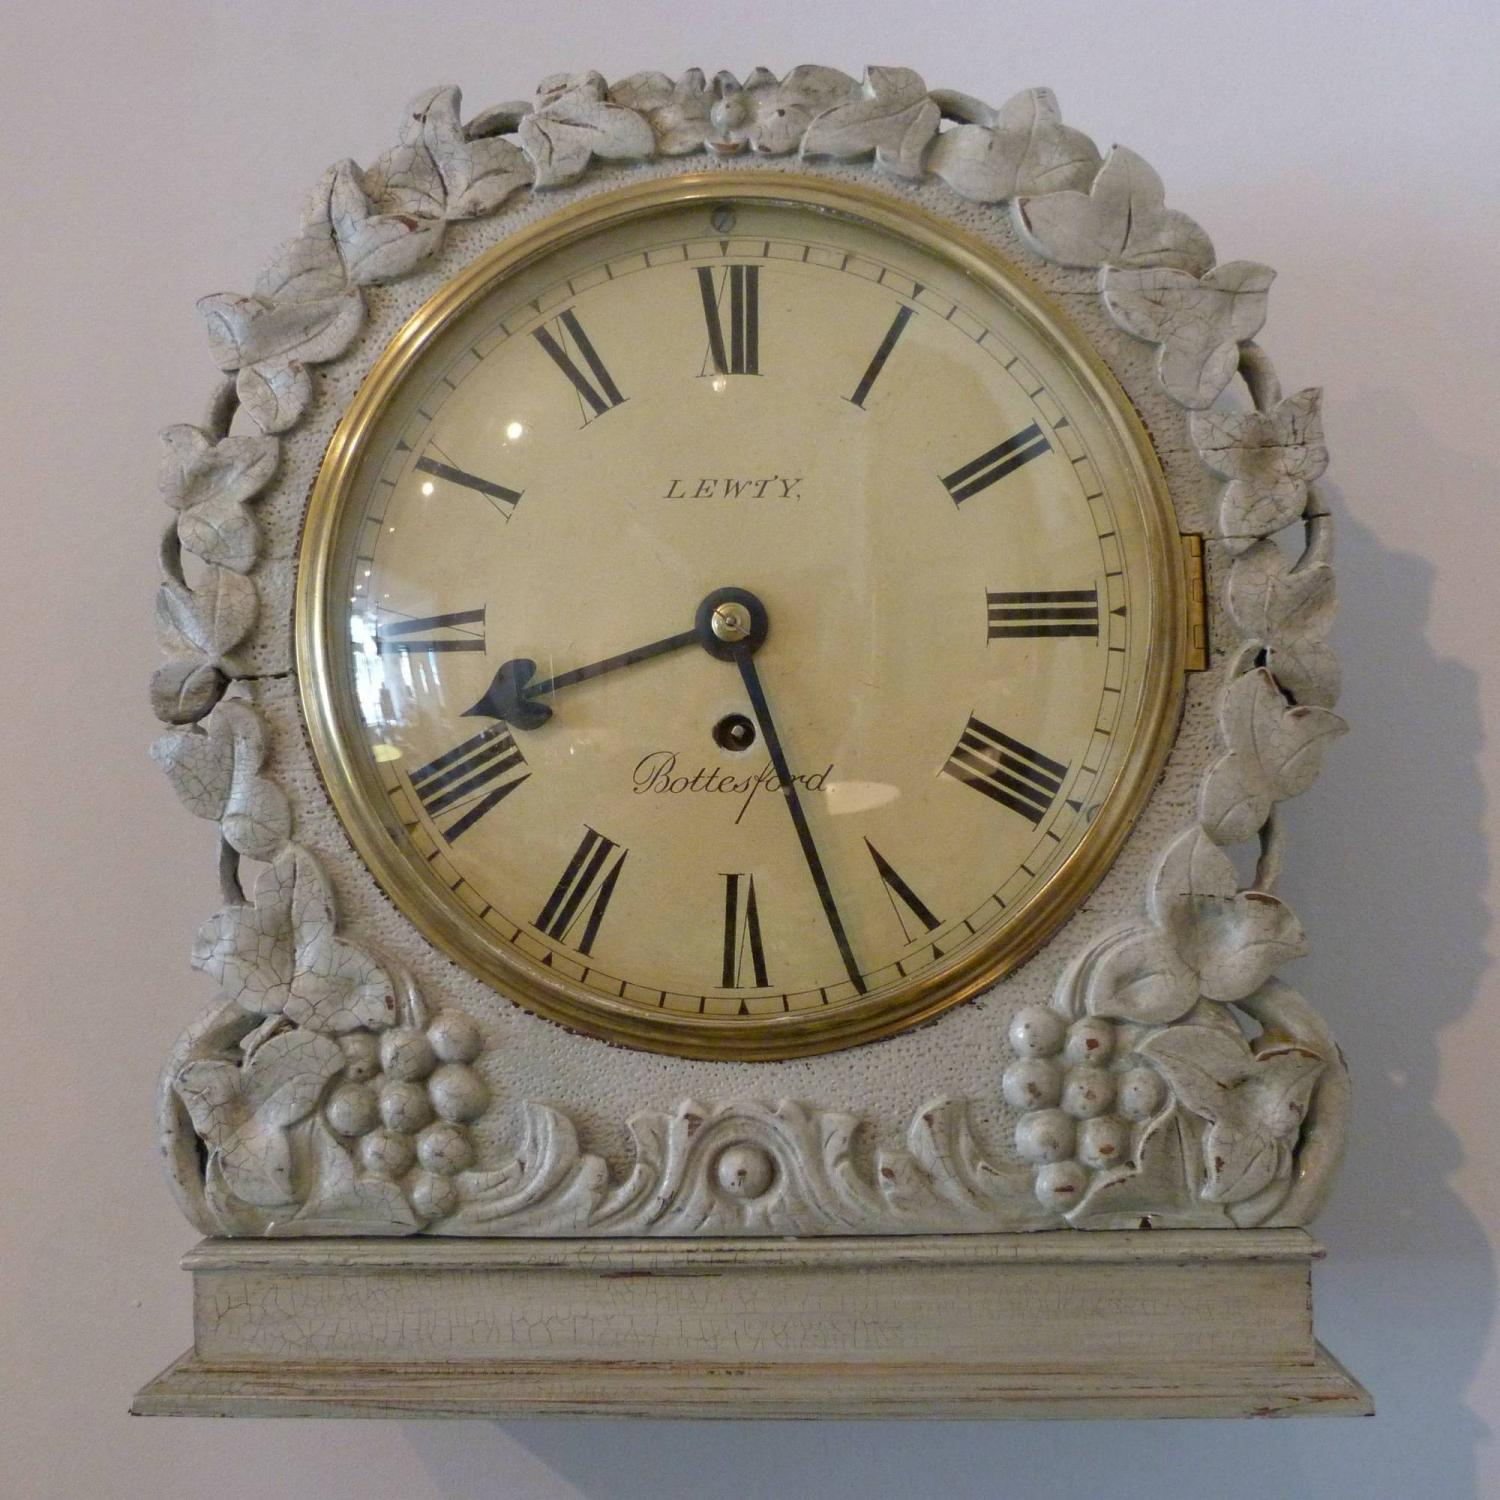 19TH CENTURY ENGLISH DIAL CLOCK